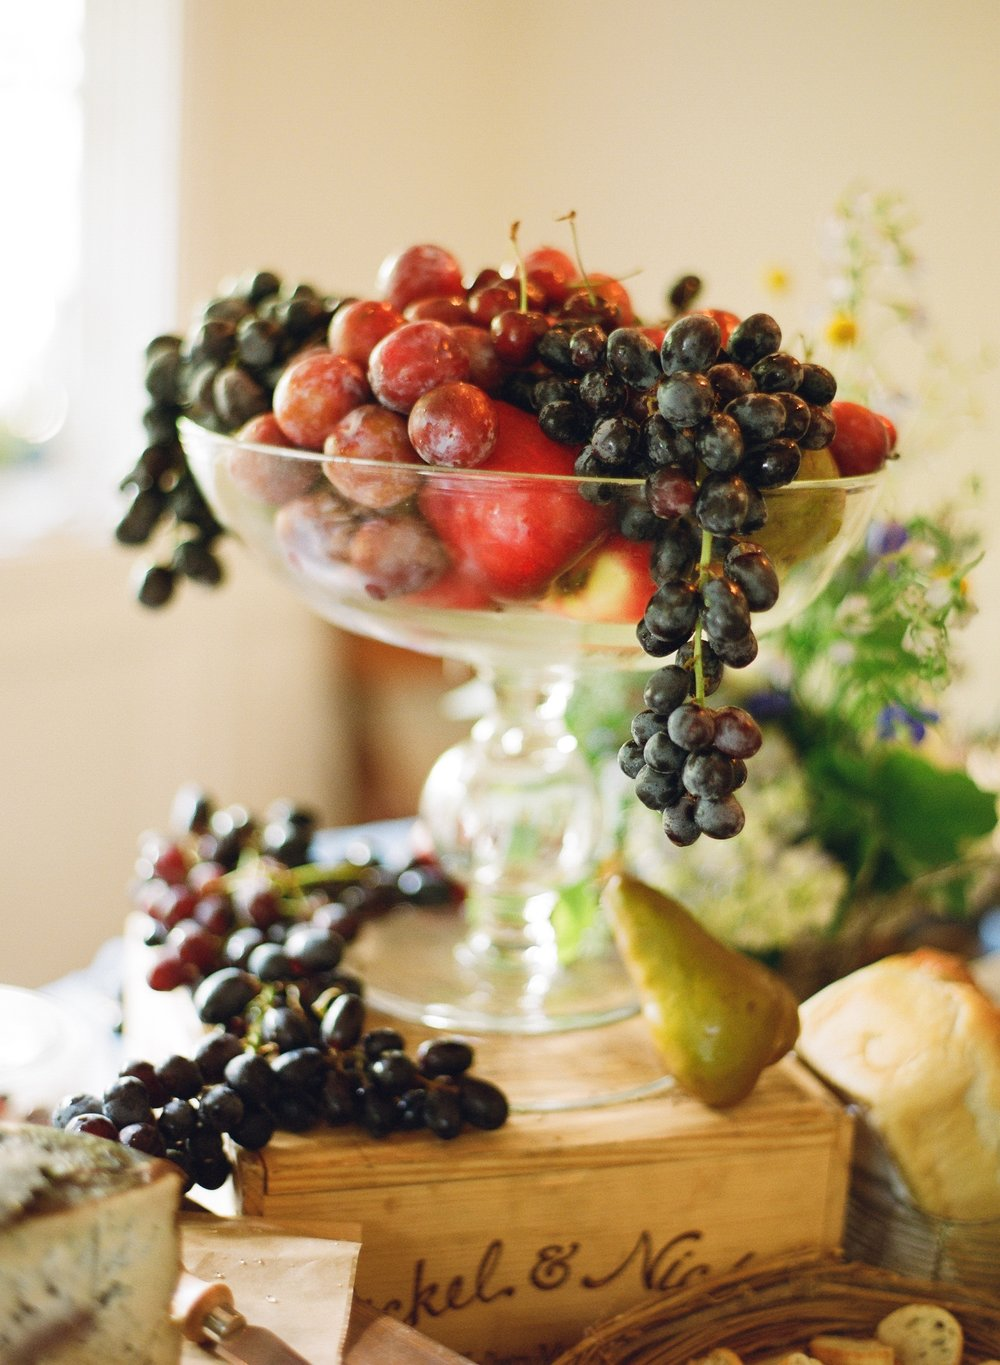 santabarbarawedding.com | Feast & Fest Catering | Fruit Display | Jose Villa